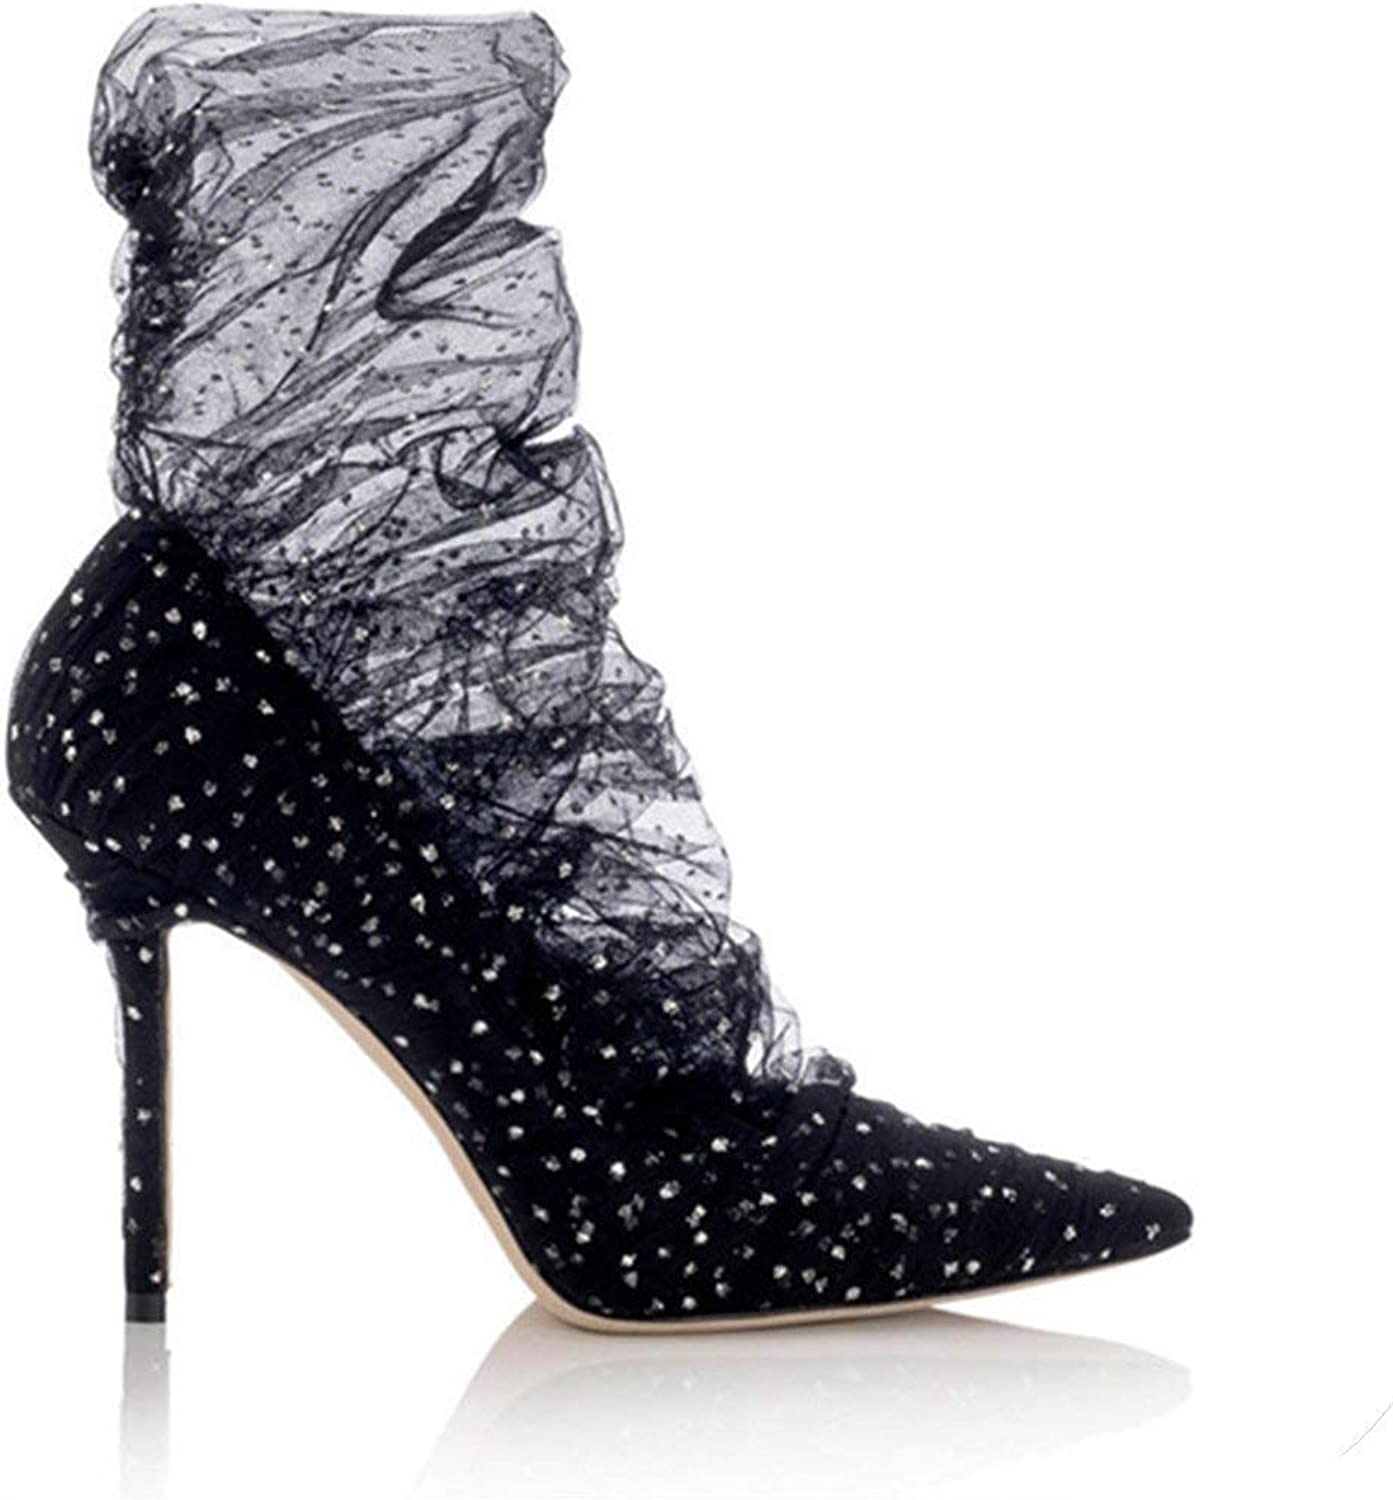 The Hot Rock-sandals Sexy Lace Women Pumps Wedding Dress shoes Woman Pointed Toe 9CM High Heels Ladies Stiletto Ankle Boots Valentine shoes